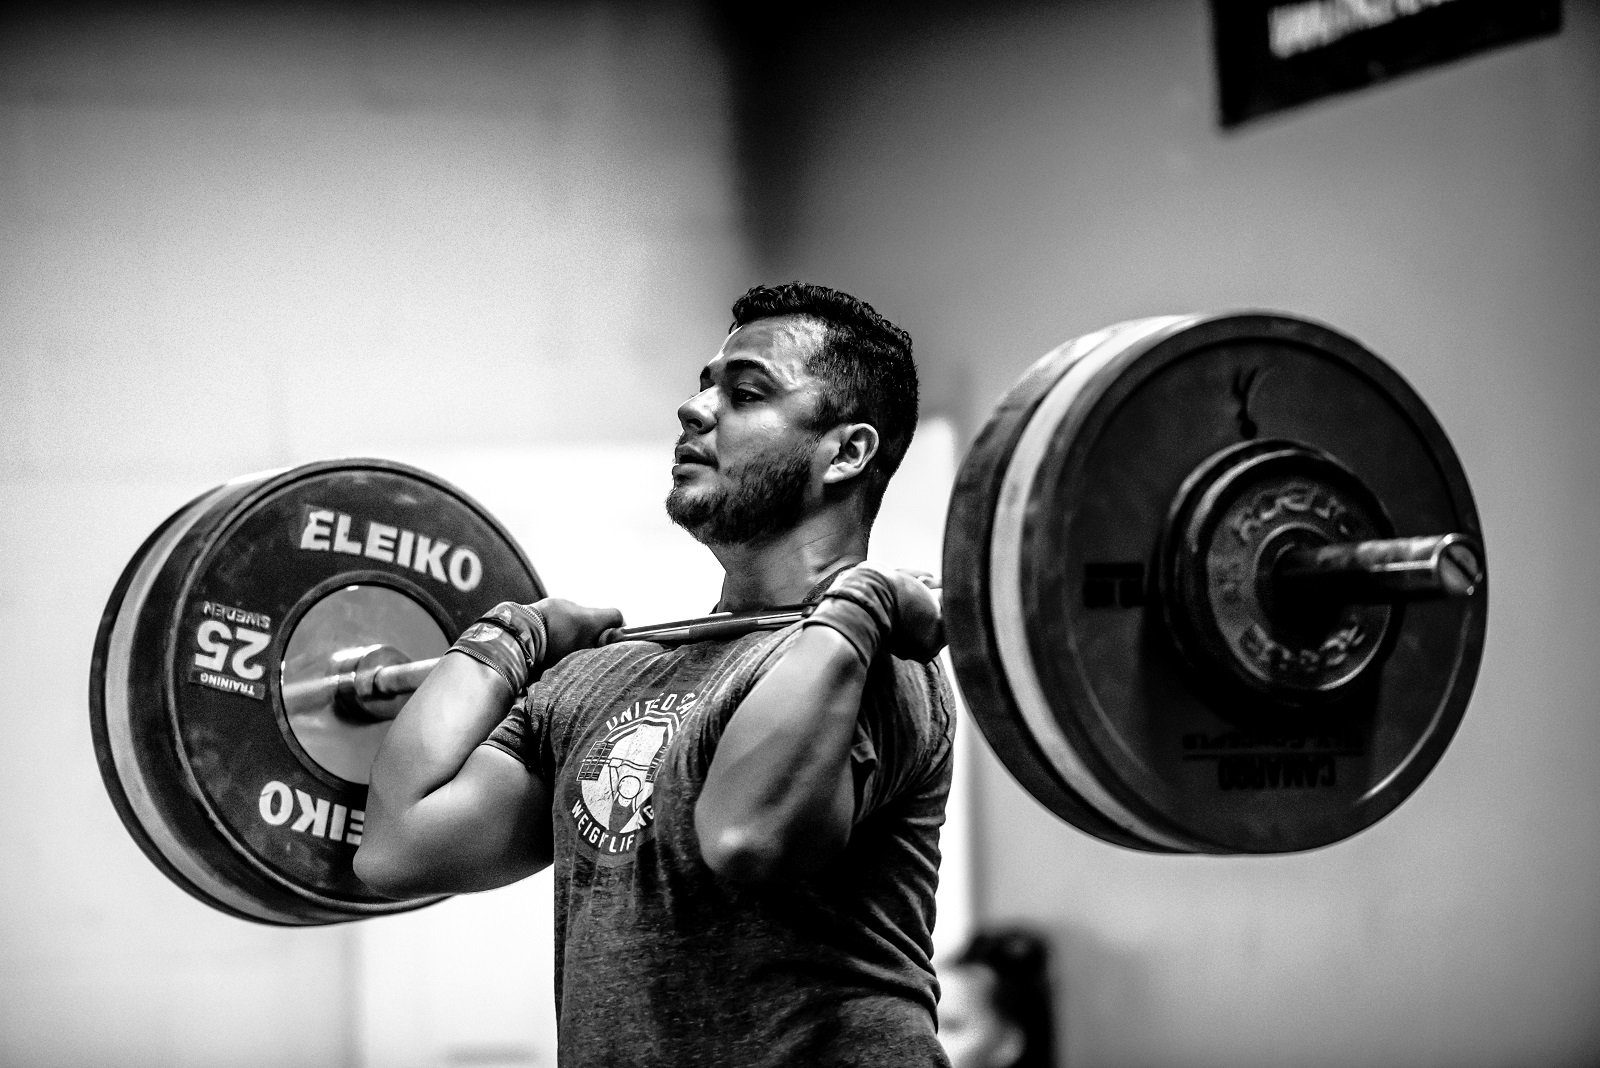 Clean - The clean and jerk is a composite of two weightlifting movements, most often performed with a barbell: the clean and the jerk. During the clean, the lifter moves the barbell from the floor to a racked position across the deltoids, without resting fully on the clavicles.